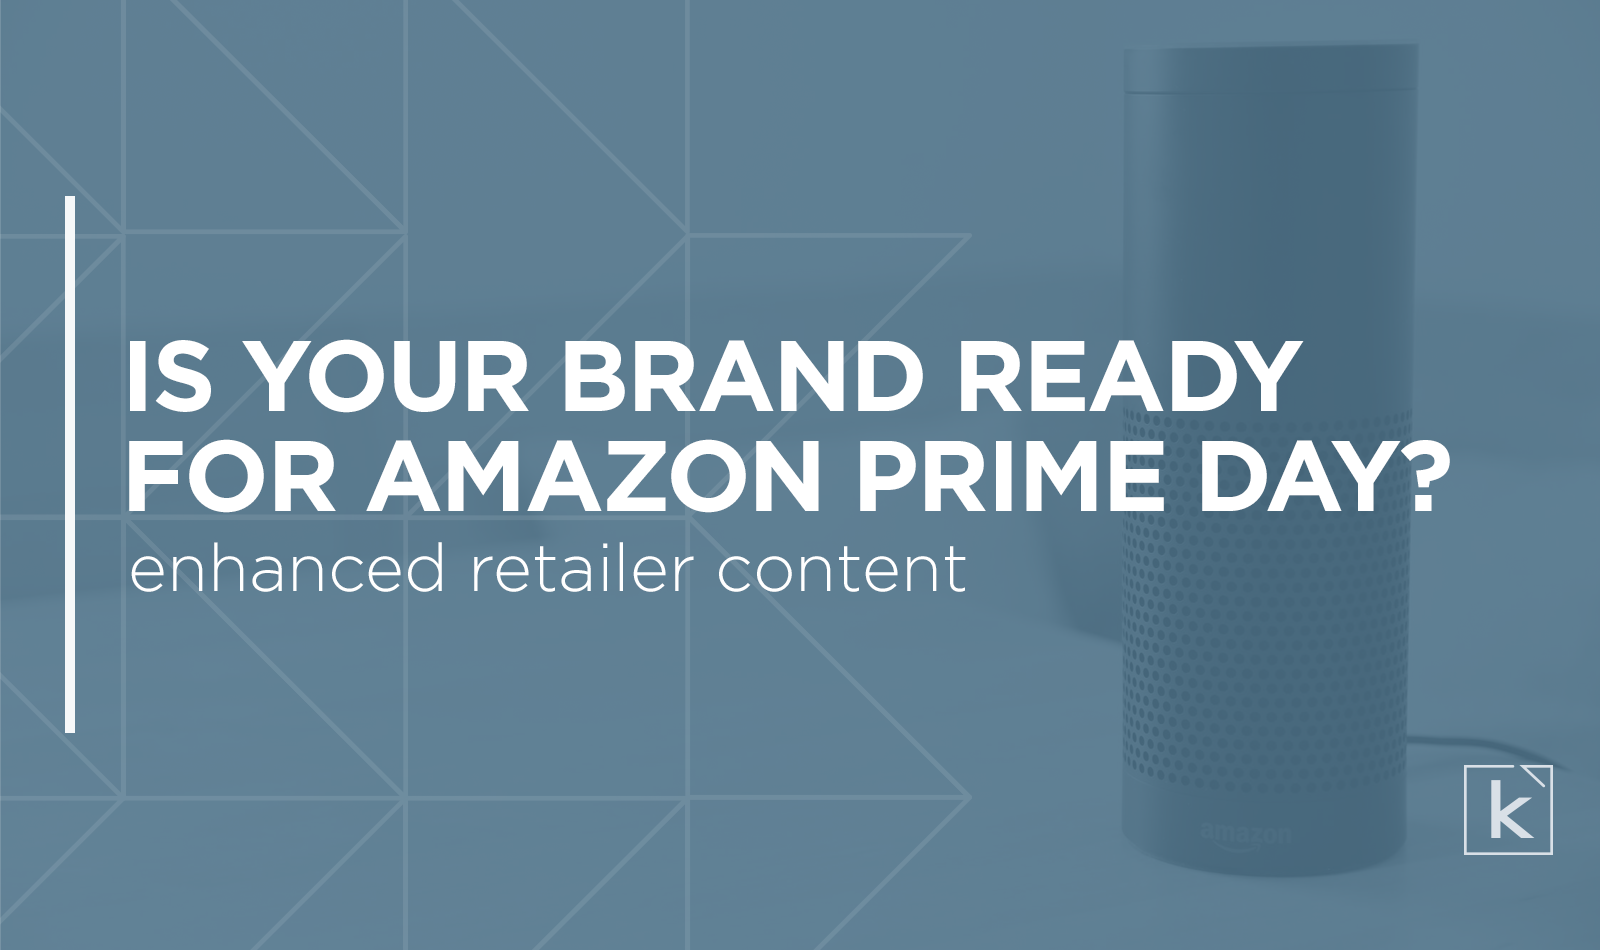 brand-ready-for-amazon-prime-day-alexa